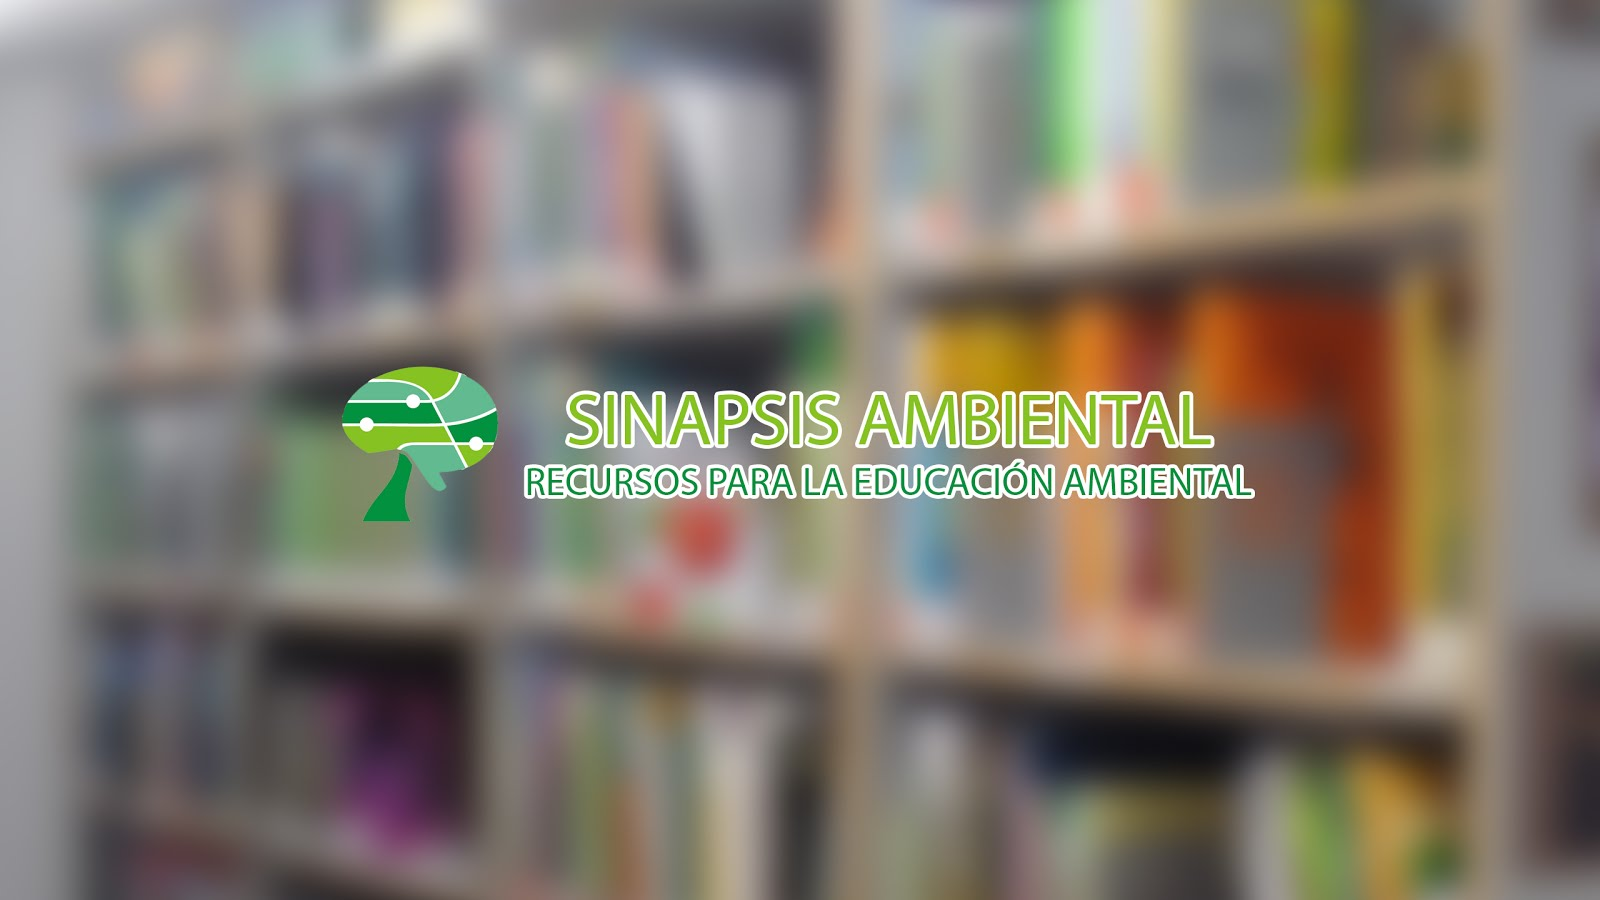 CANAL SINAPSIS AMBIENTAL